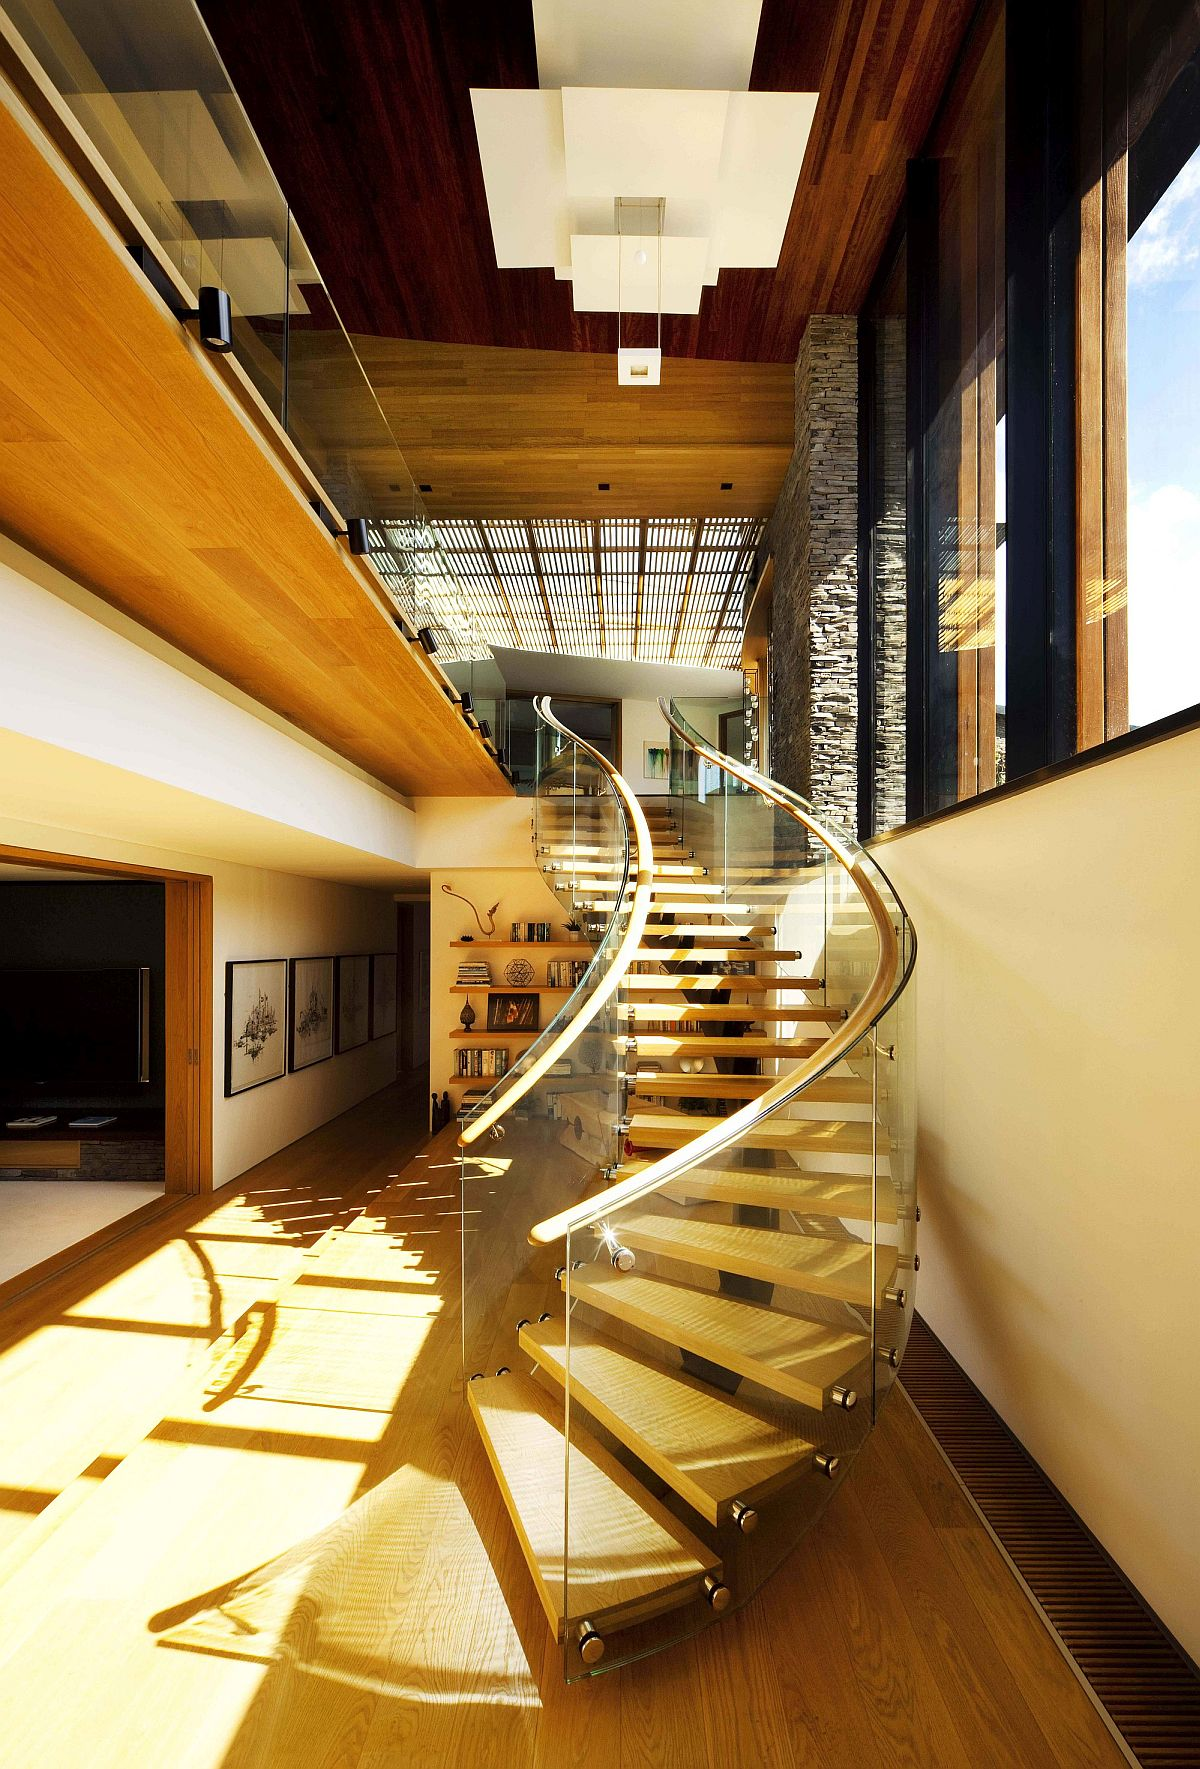 Modern-curvy-staircase-leads-way-to-the-upper-level-of-the-home-35597